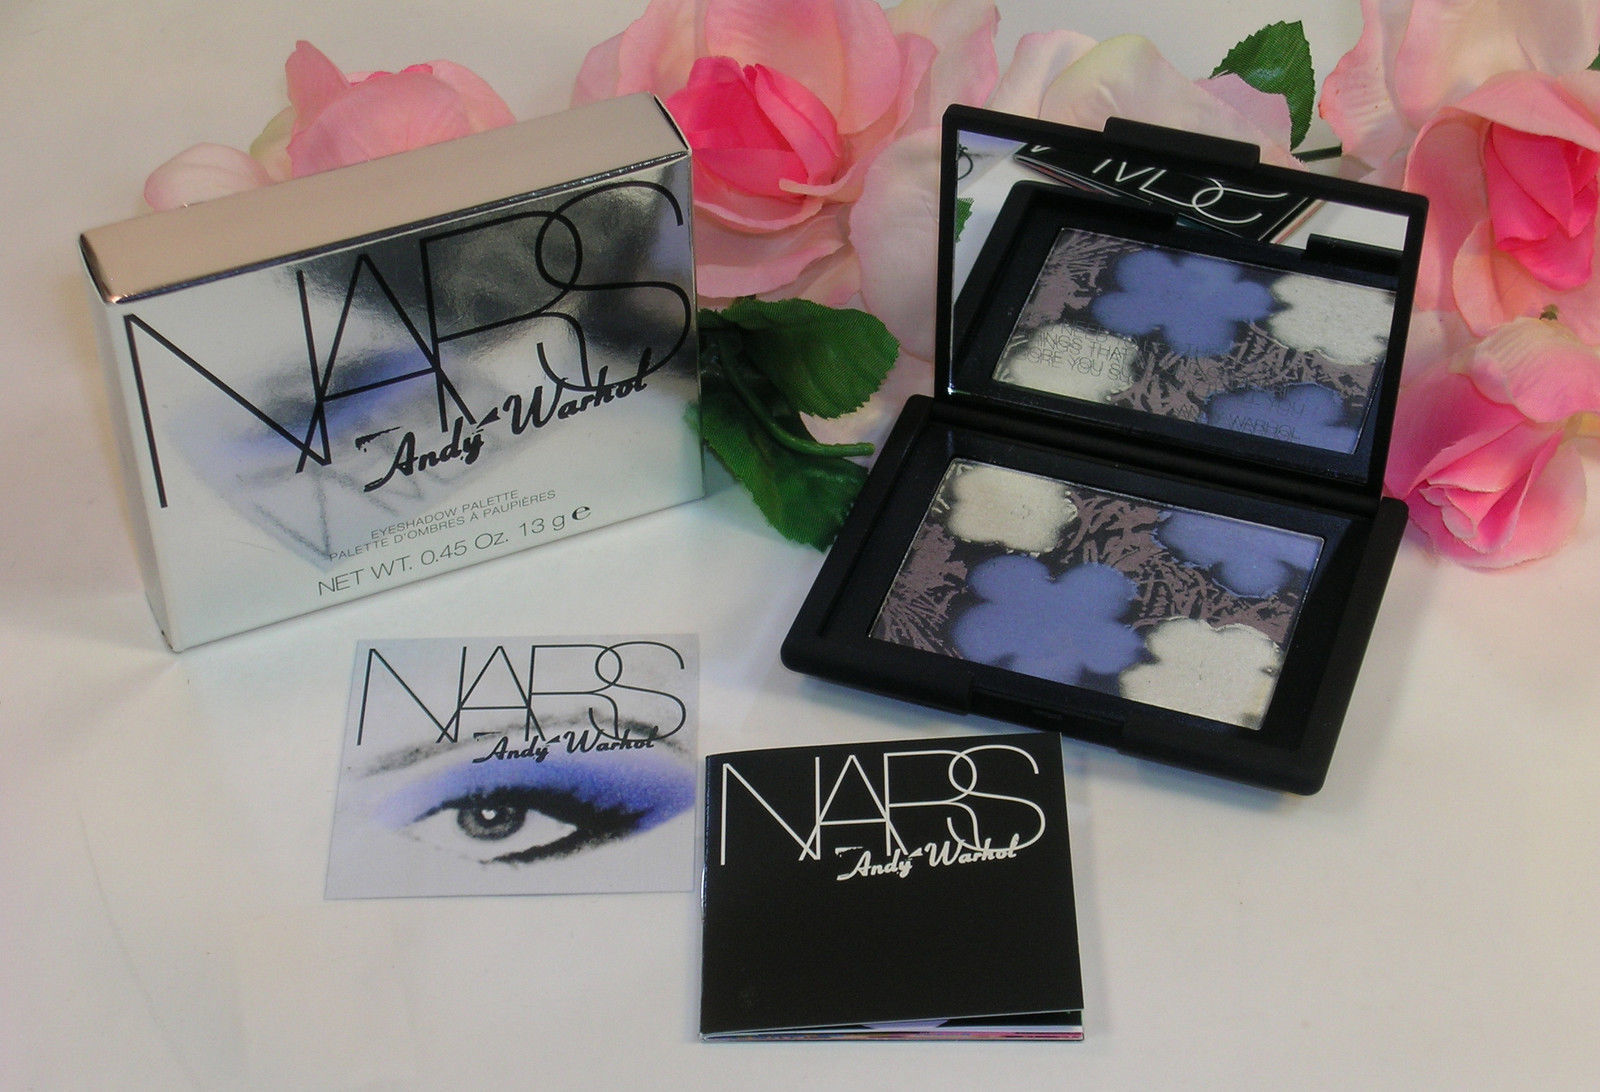 Primary image for New NARS Andy Warhol Eye Shadow Palette Compact Flowers #2 .45 oz 13 g Full Size